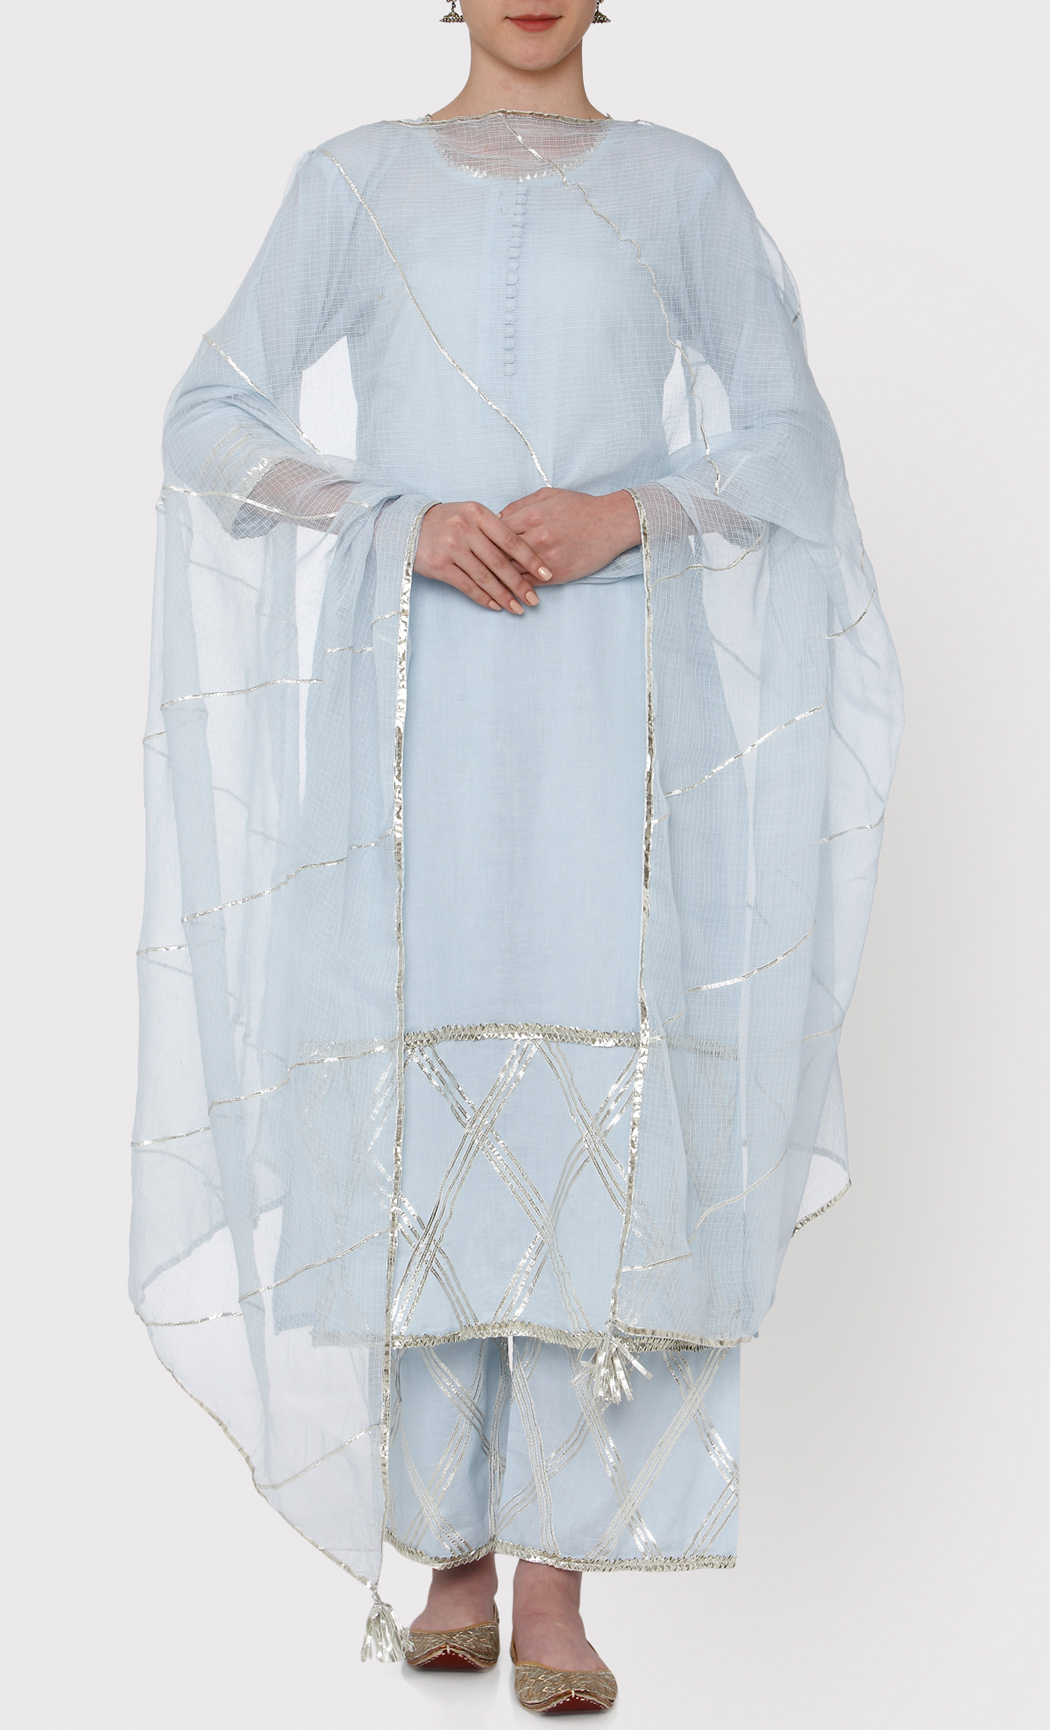 Padamja Powder Blue Kurta and Pants Set. Buy Online.